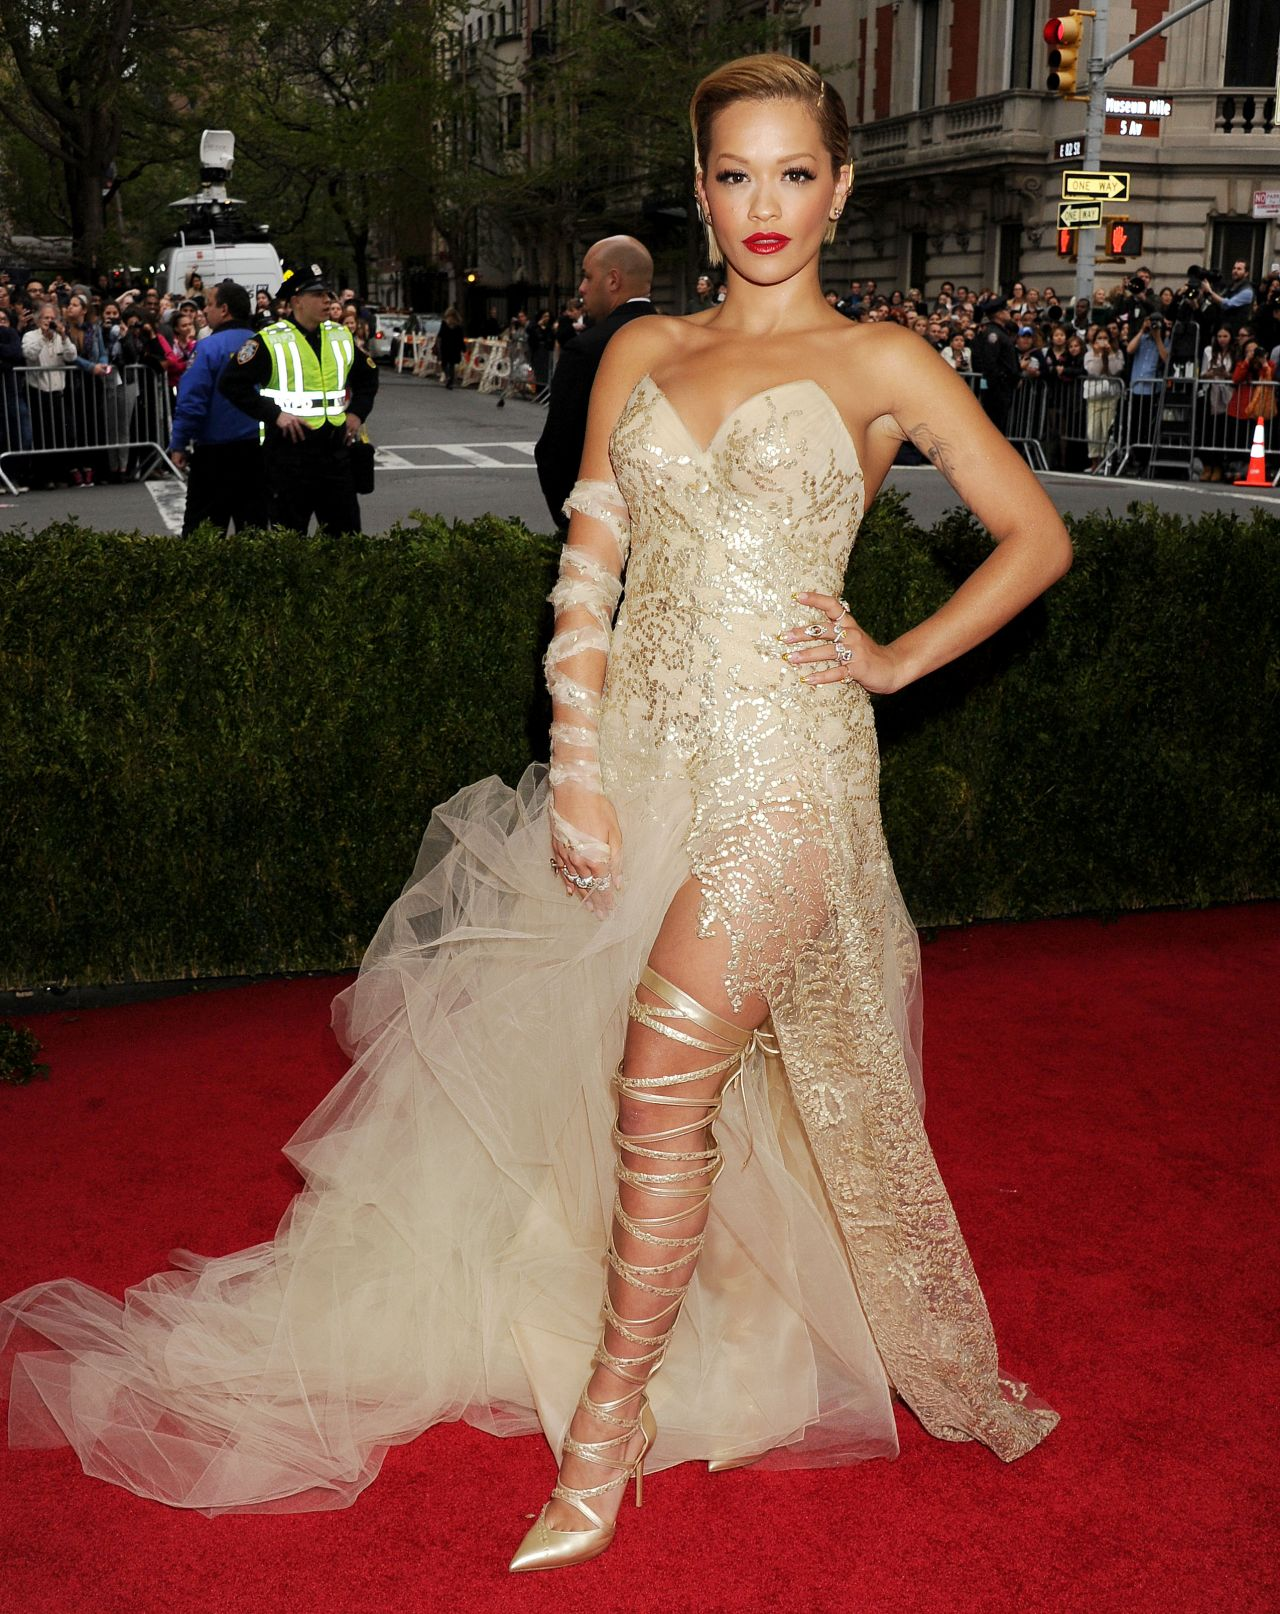 Rita Ora Wearing Donna Karan Atelier Gown – 2014 Met Costume Institute Gala